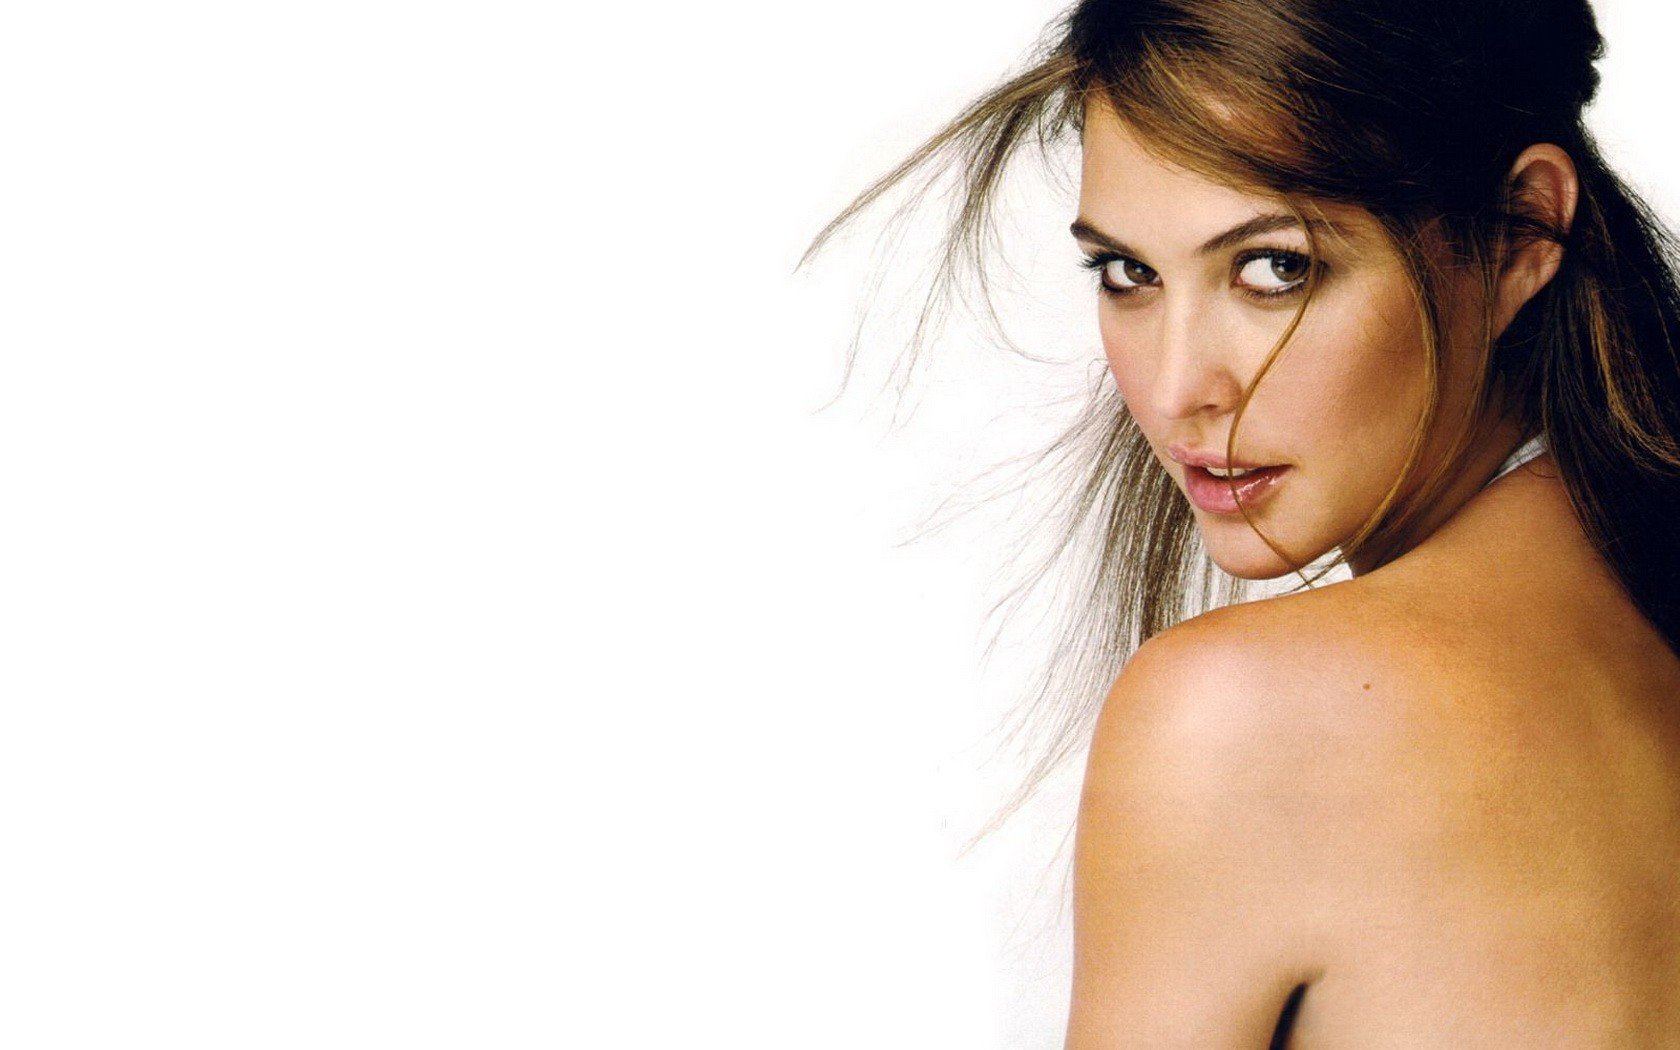 Awesome Josie Maran free wallpaper ID:421680 for hd 1680x1050 desktop